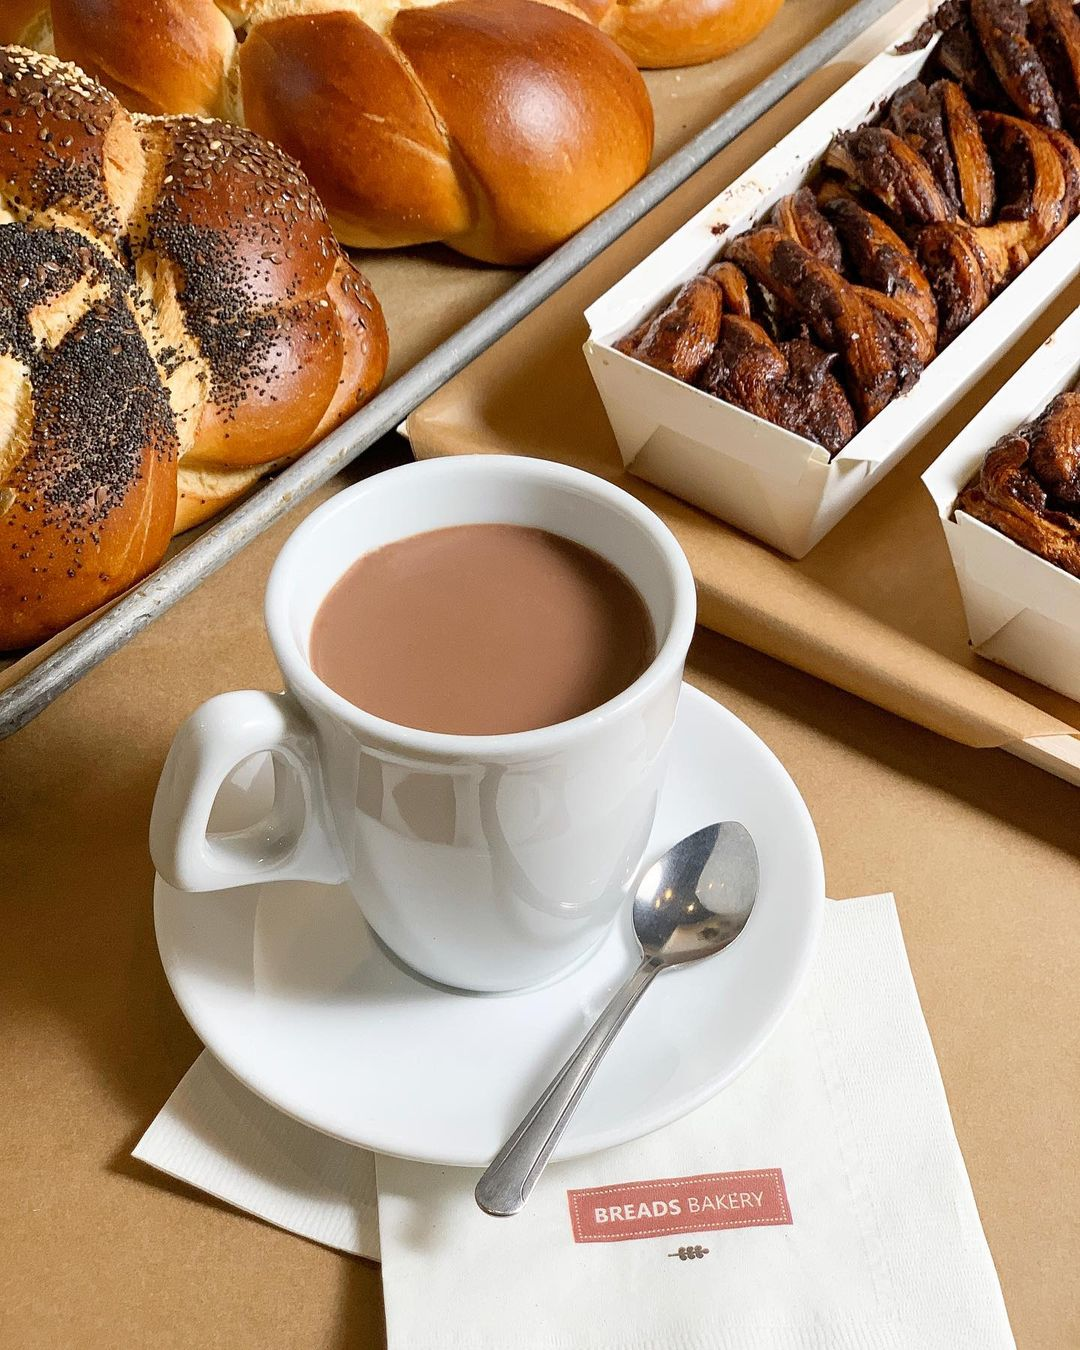 a cup of coffee with a Breads Bakery branded napkin sits in front of a tray of fresh rolls and a tray of chocolate babka